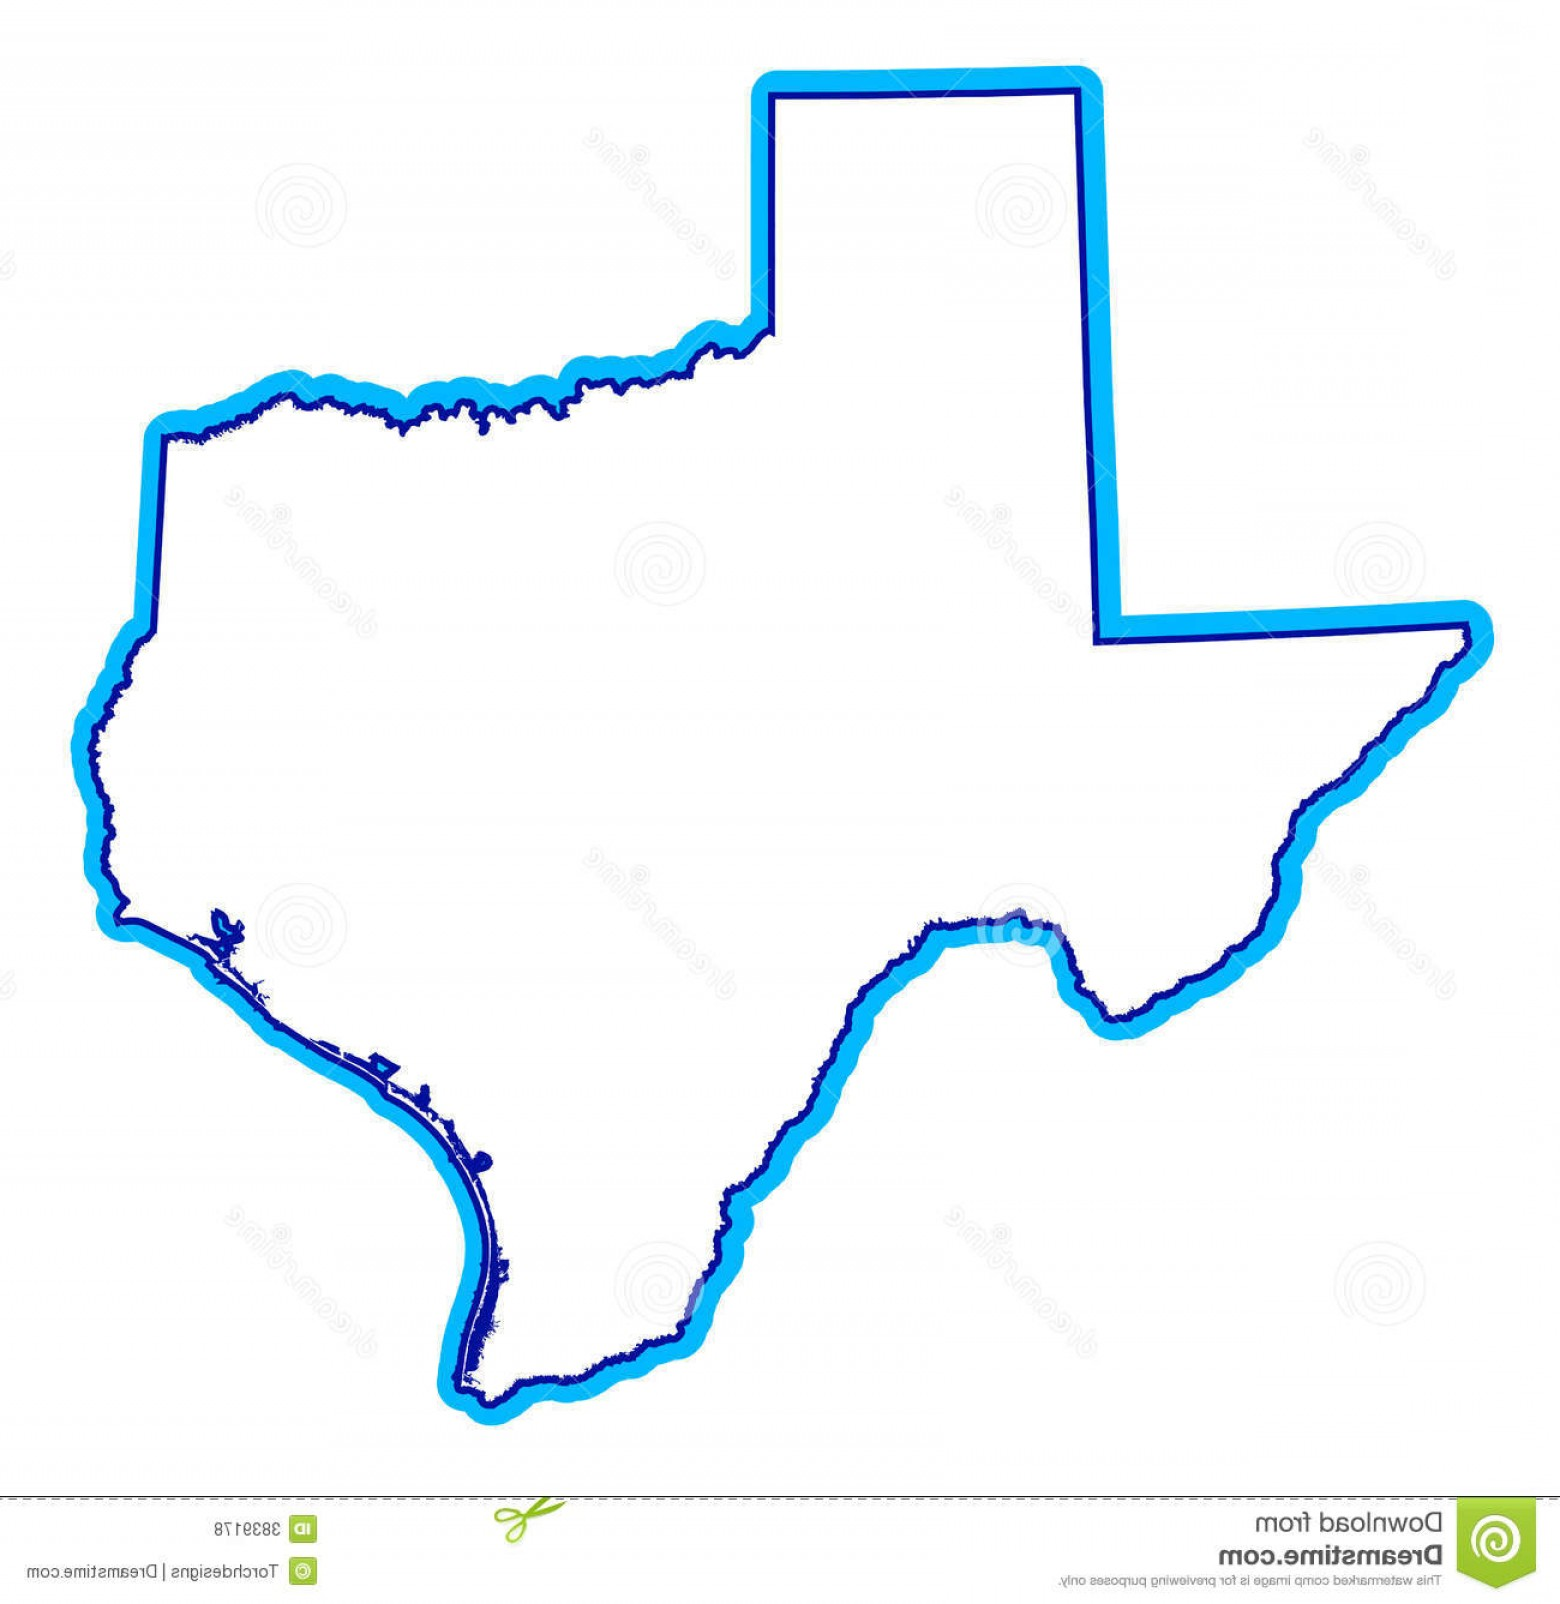 Texas Vector Drawing: Royalty Free Stock Photos Drawing State Texas Image